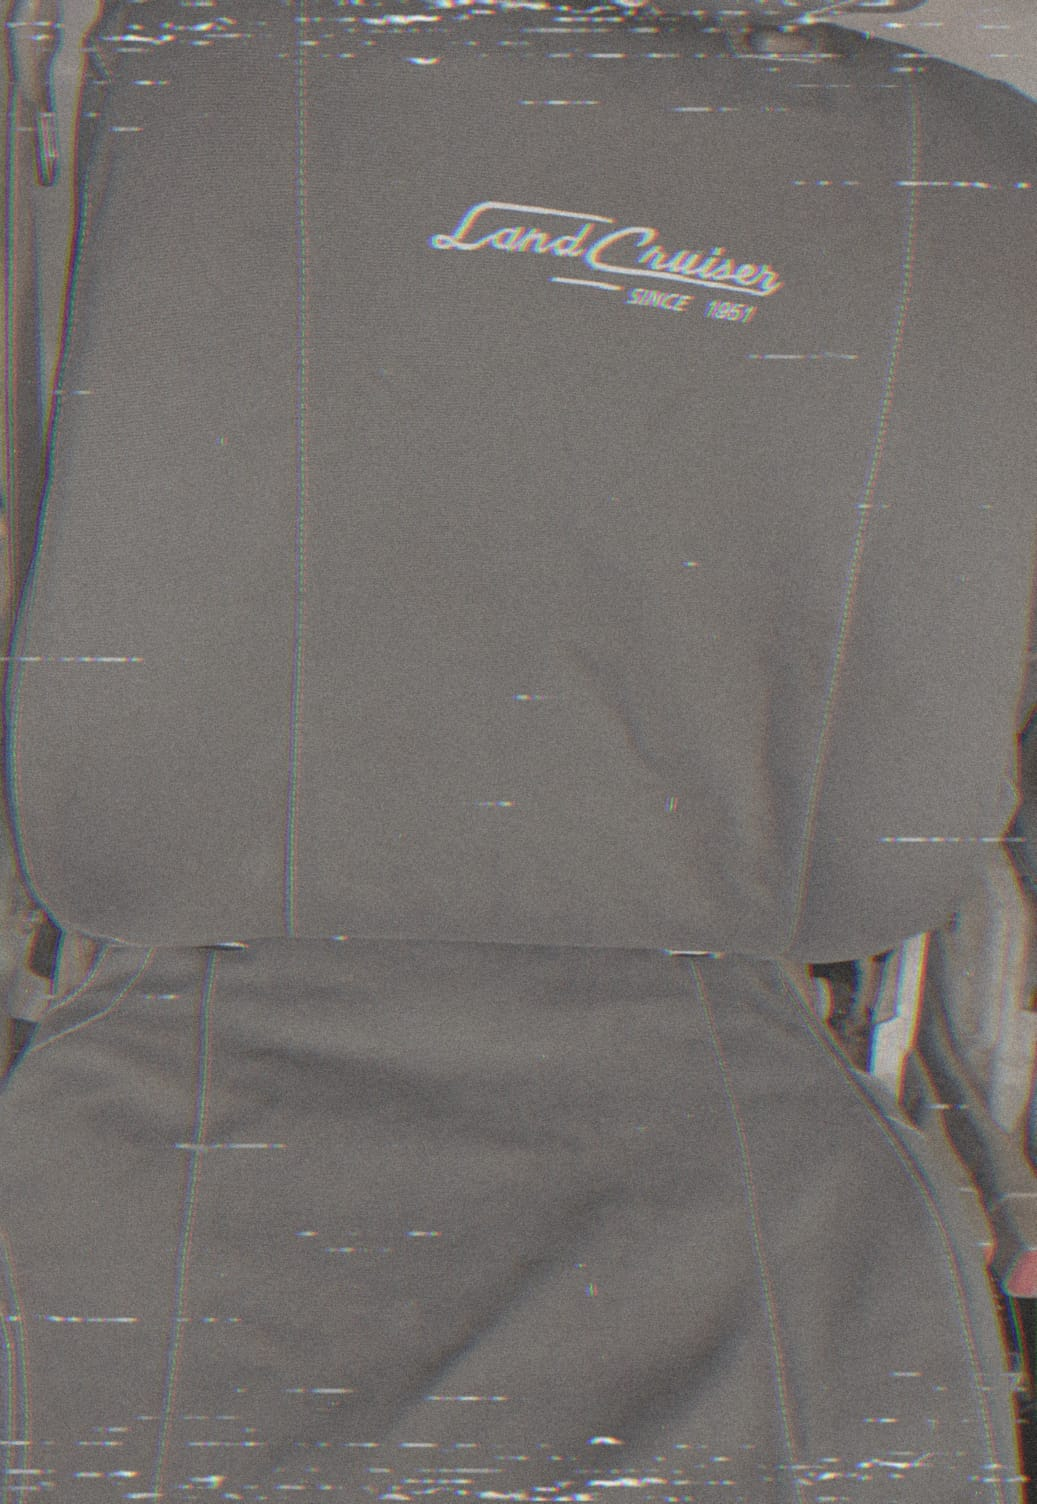 Landcruiser Seat covers